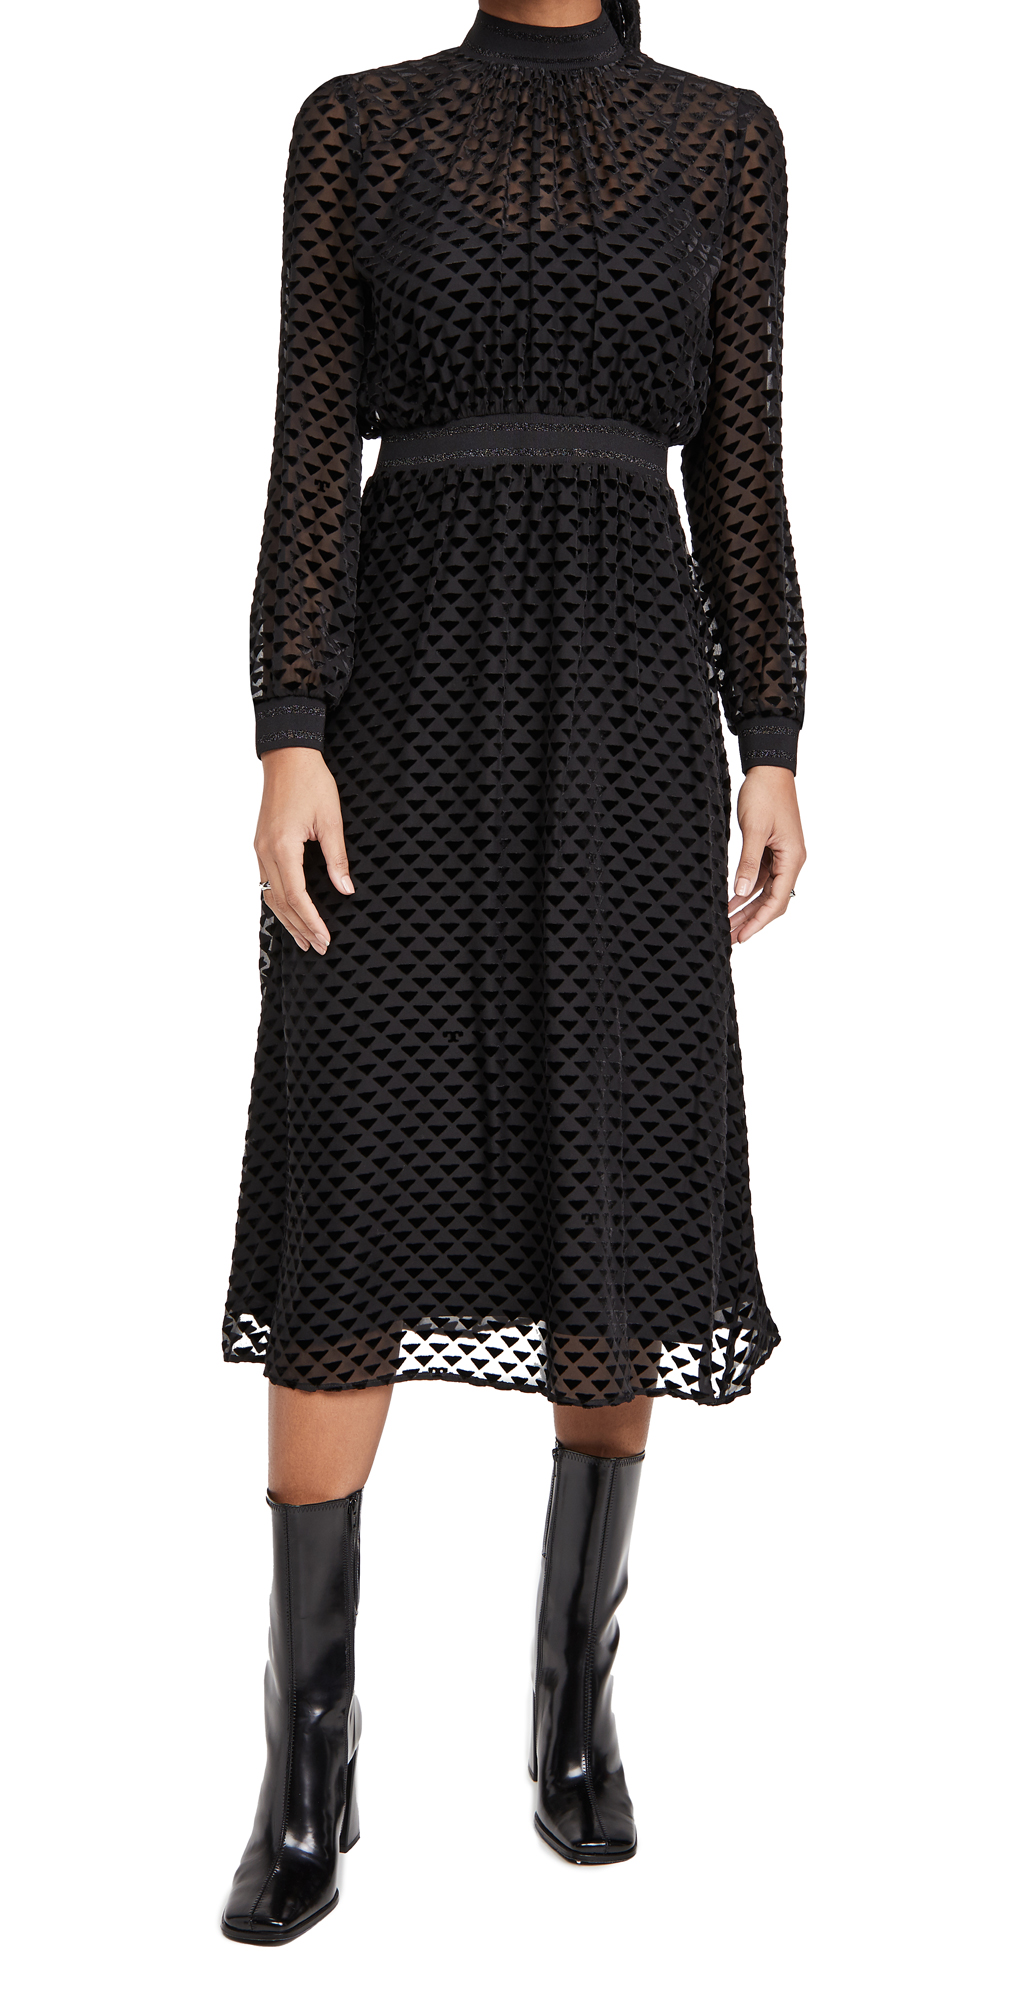 Tory Burch Velvet Devore Dress